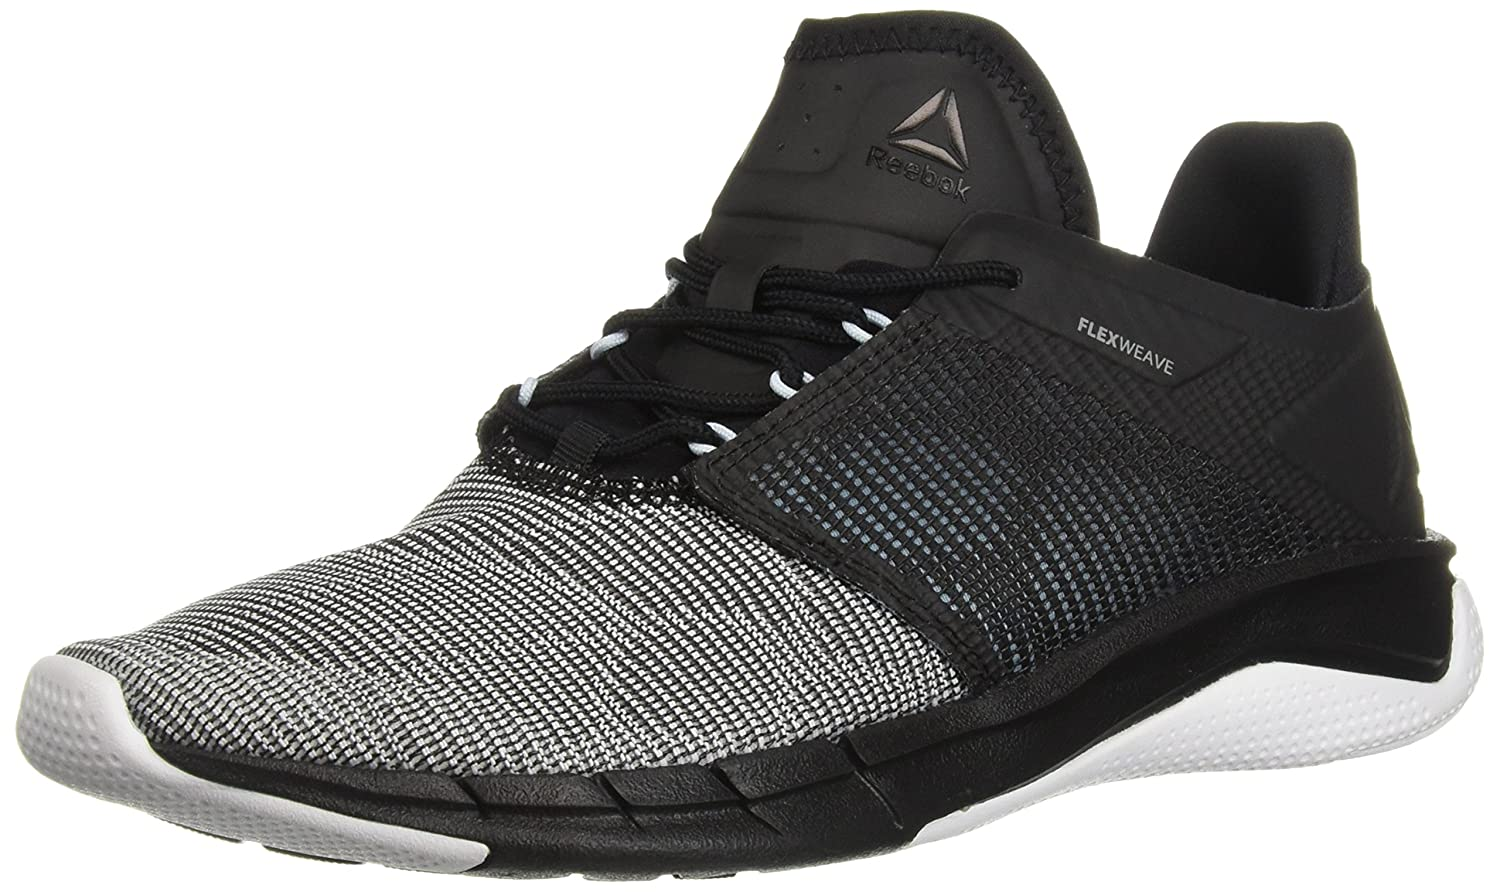 Reebok レディース B077ZC952M 7 B(M) US|Black/Dreamy Blue/White/S Black/Dreamy Blue/White/S 7 B(M) US